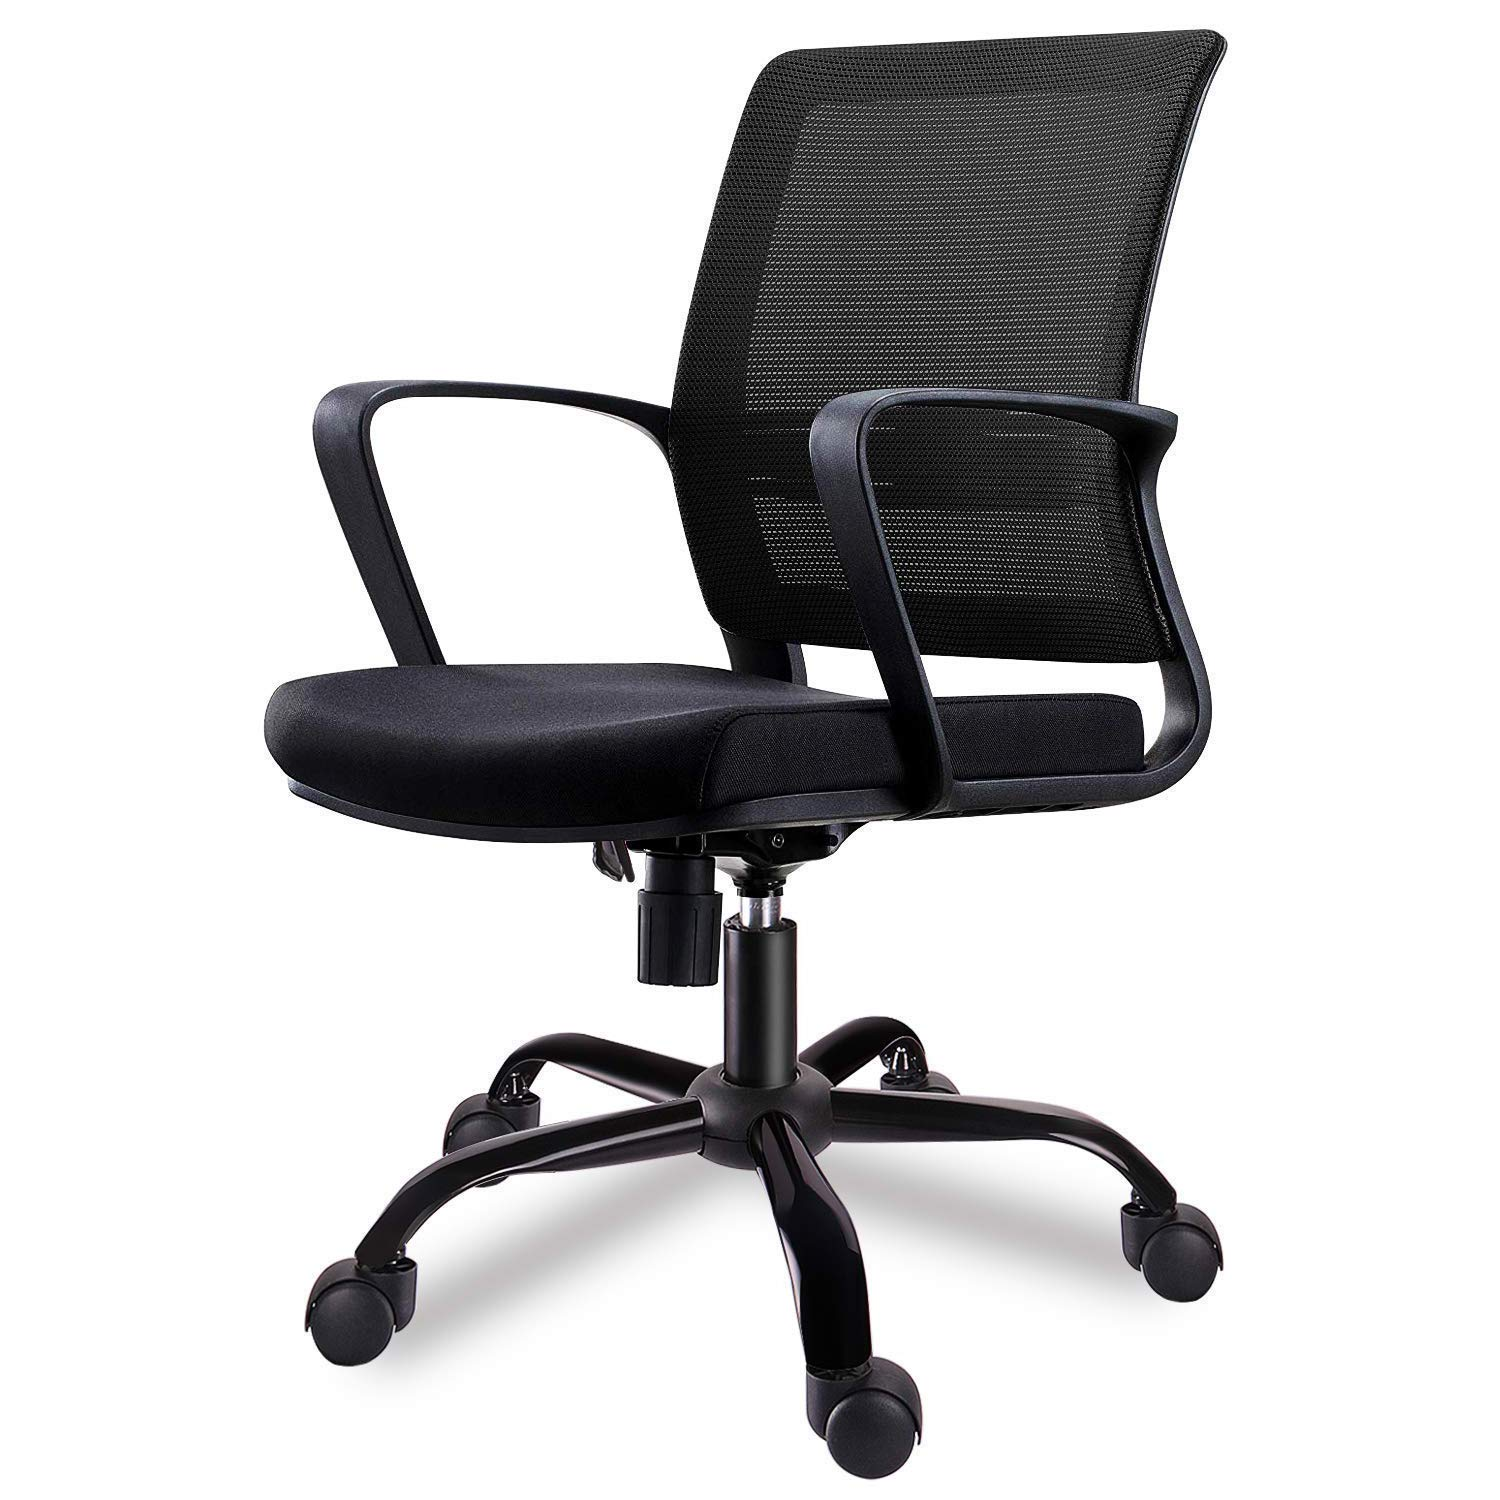 SMUGDESK Mid-Back Big Ergonomic Office Lumbar Support Mesh Computer Desk Task Chair with Armrests by SMUGDESK